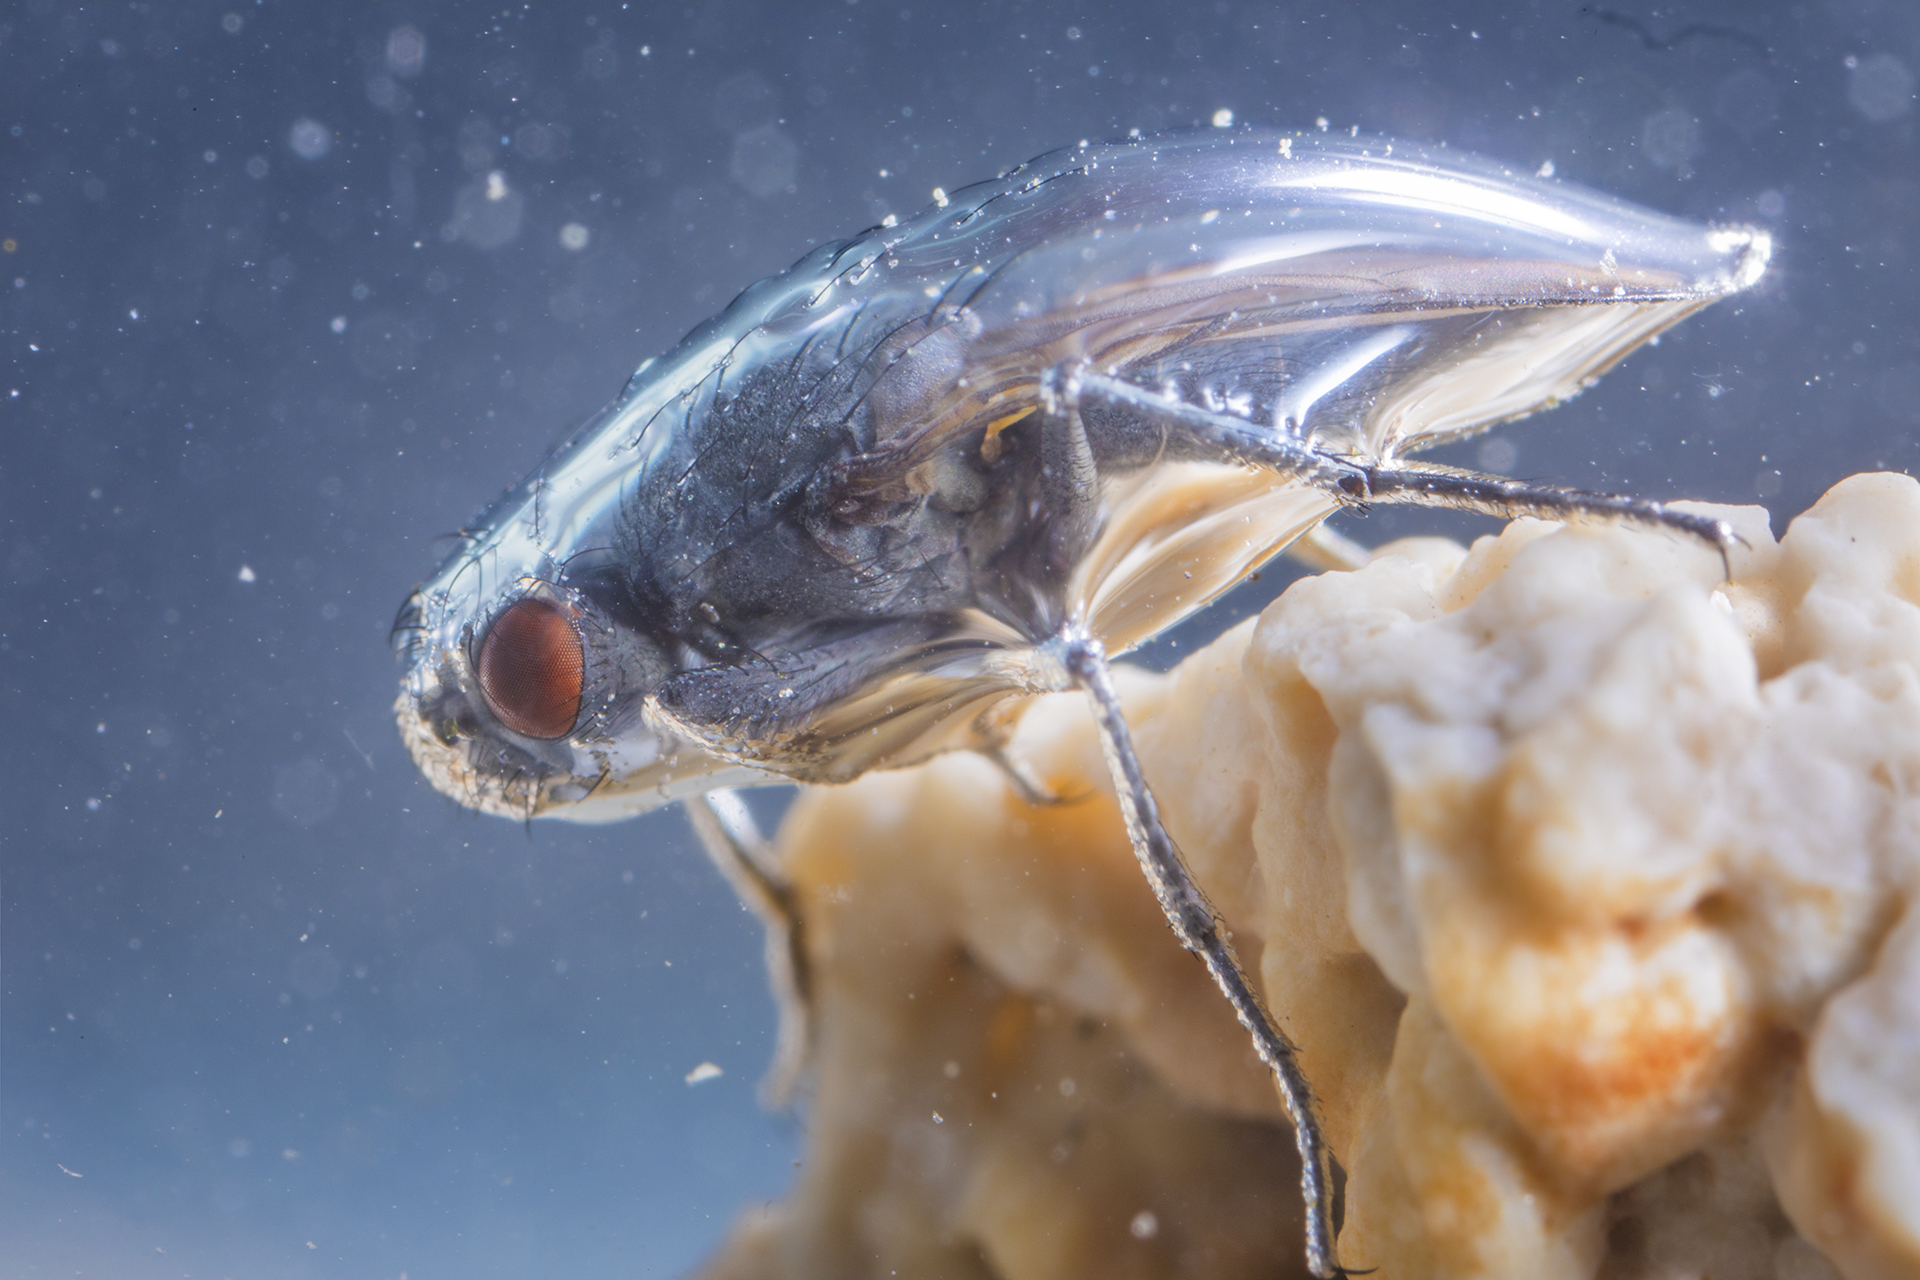 An Alkali Fly (Ephydra hians), under water at Mono Lake, safely wrapped in a protective air bubble.